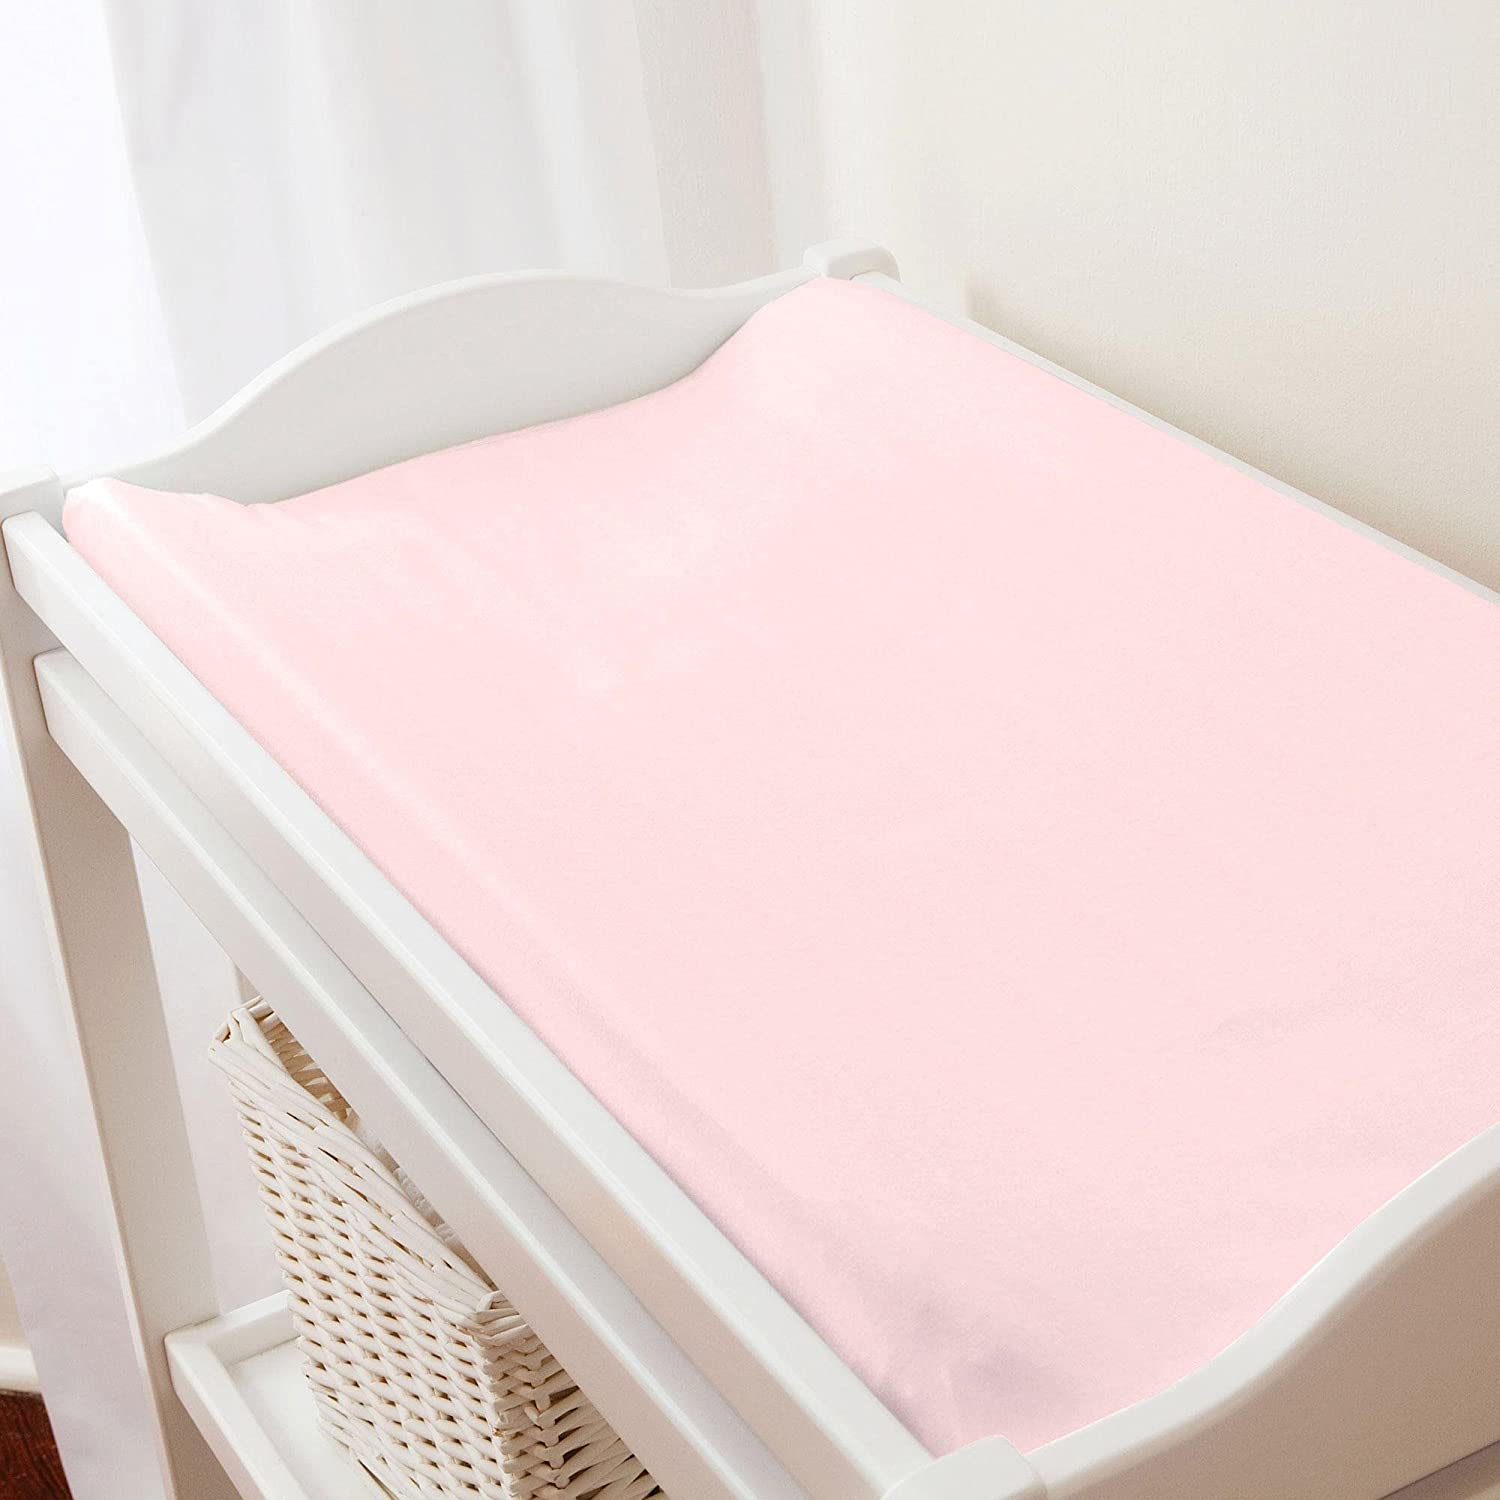 Carousel Designs Solid Pink Minky Changing Pad Cover by Carousel Designs   B00L88XG5E